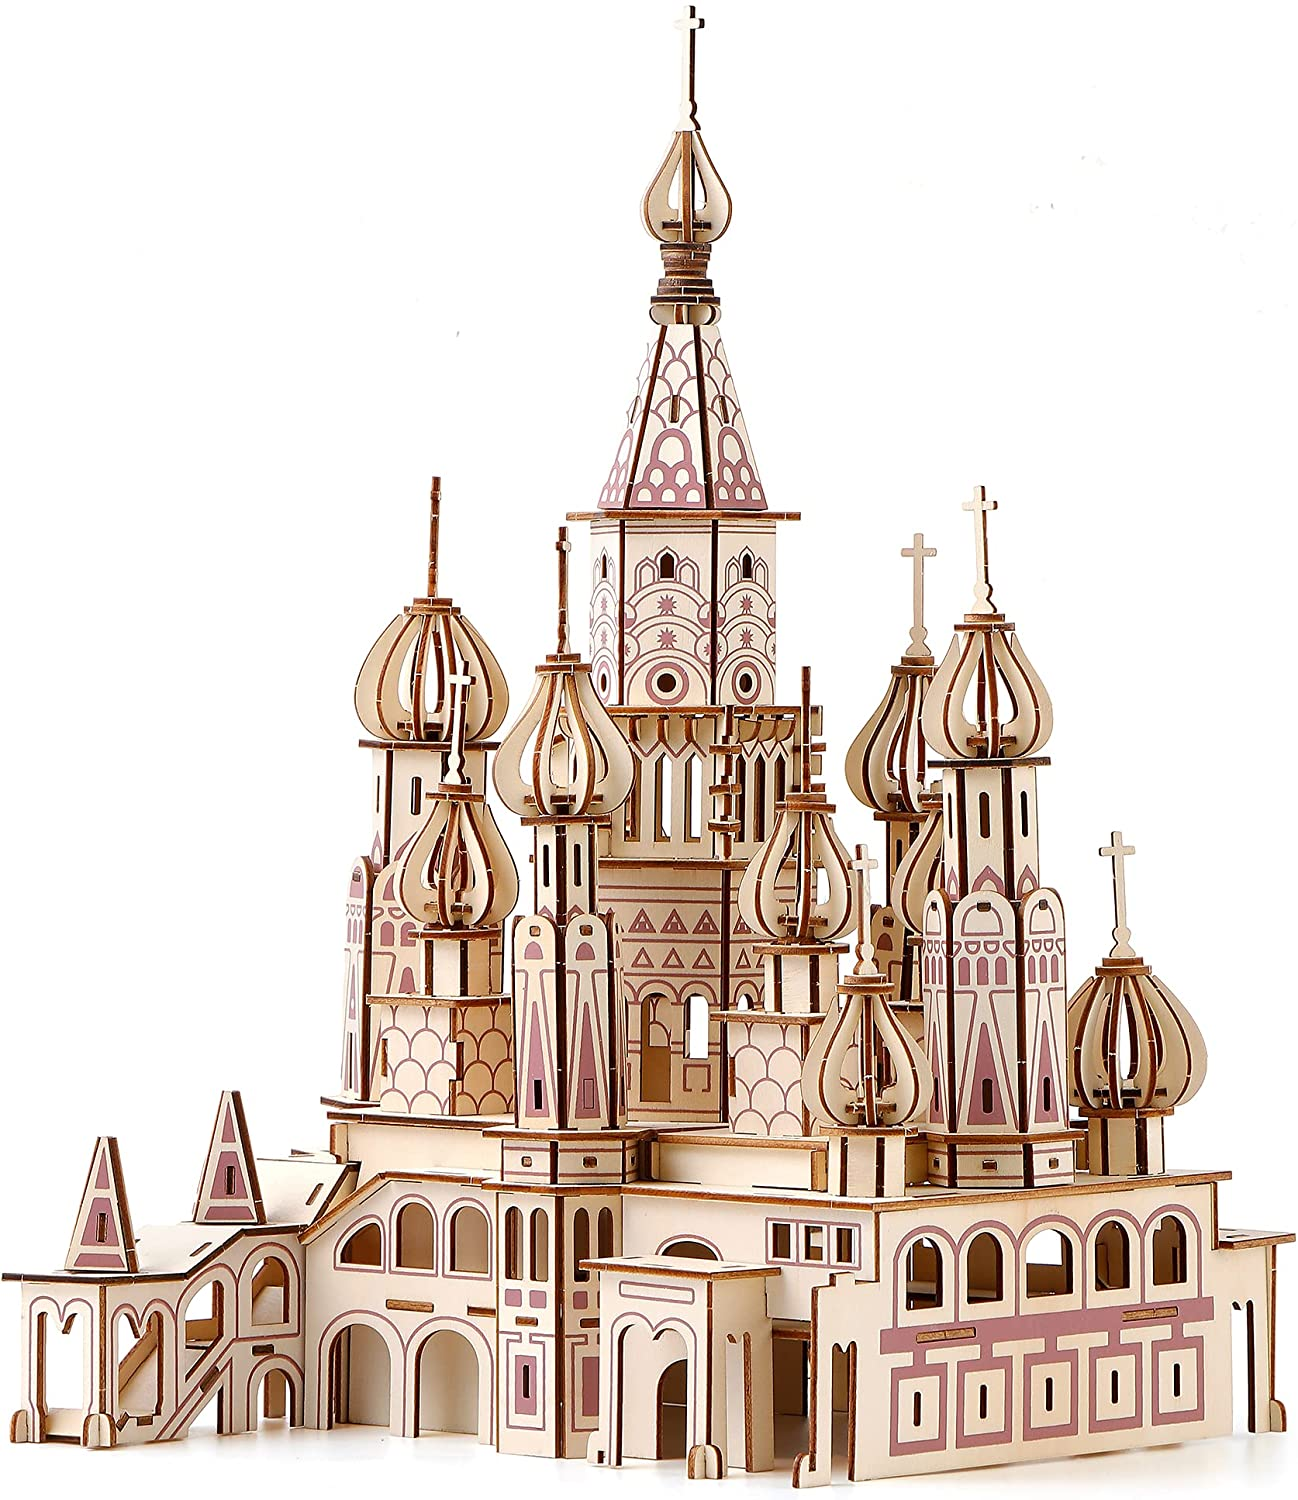 Wooden 3D Puzzle Cathedral for Adults New Orleans Mall Branded goods or Cathedr St.Basil Teens